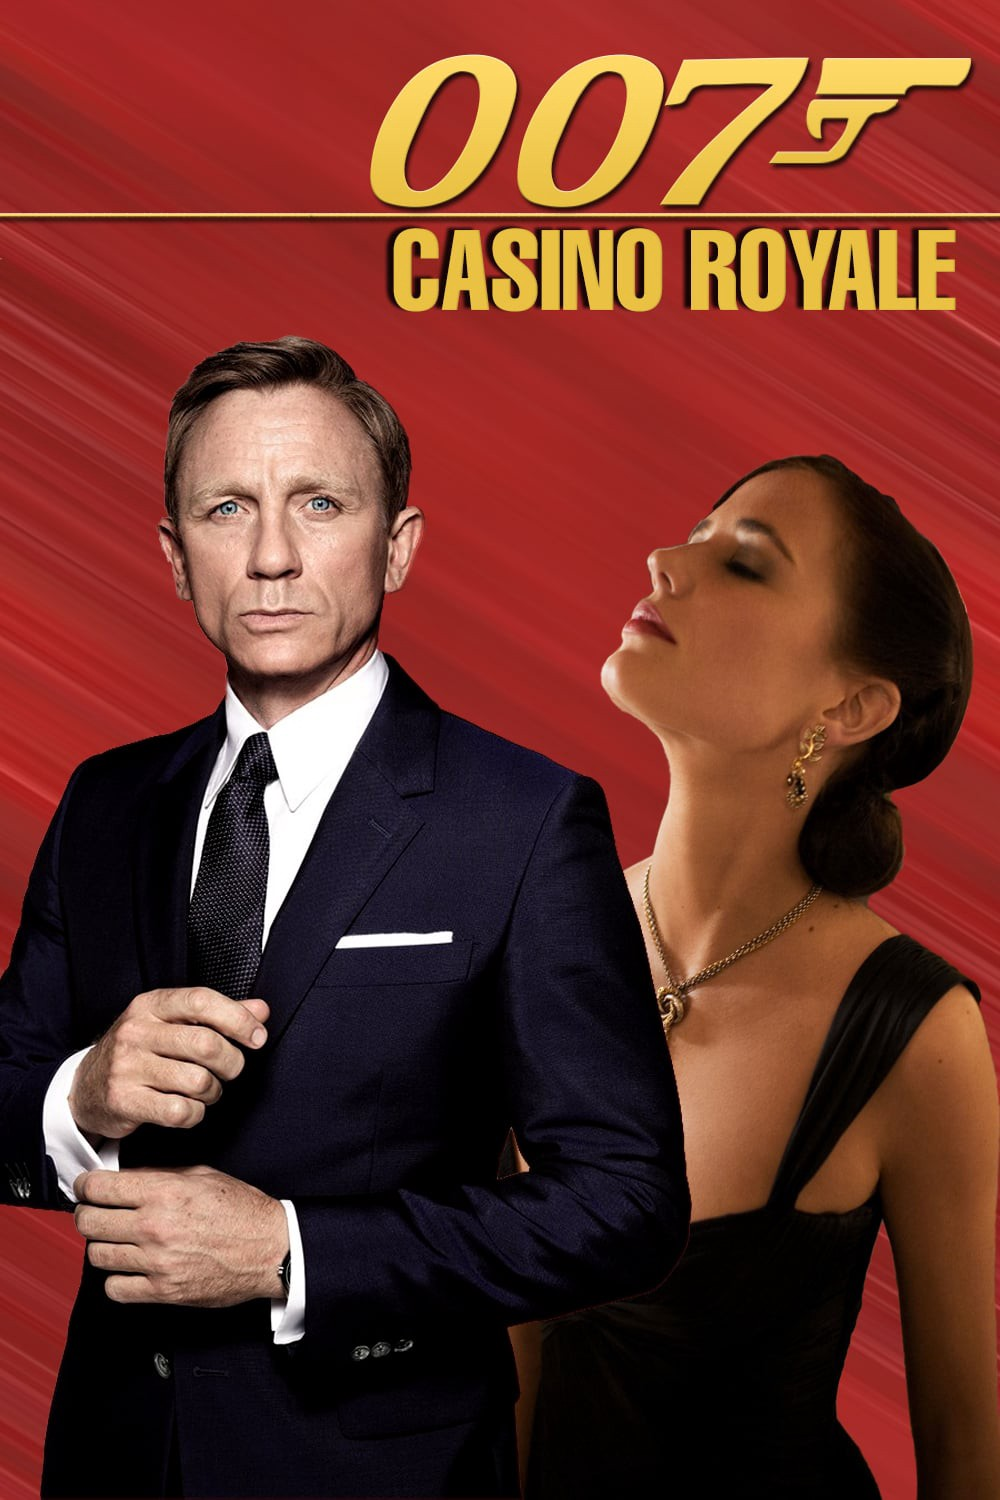 Casino Royale Cast And Crew